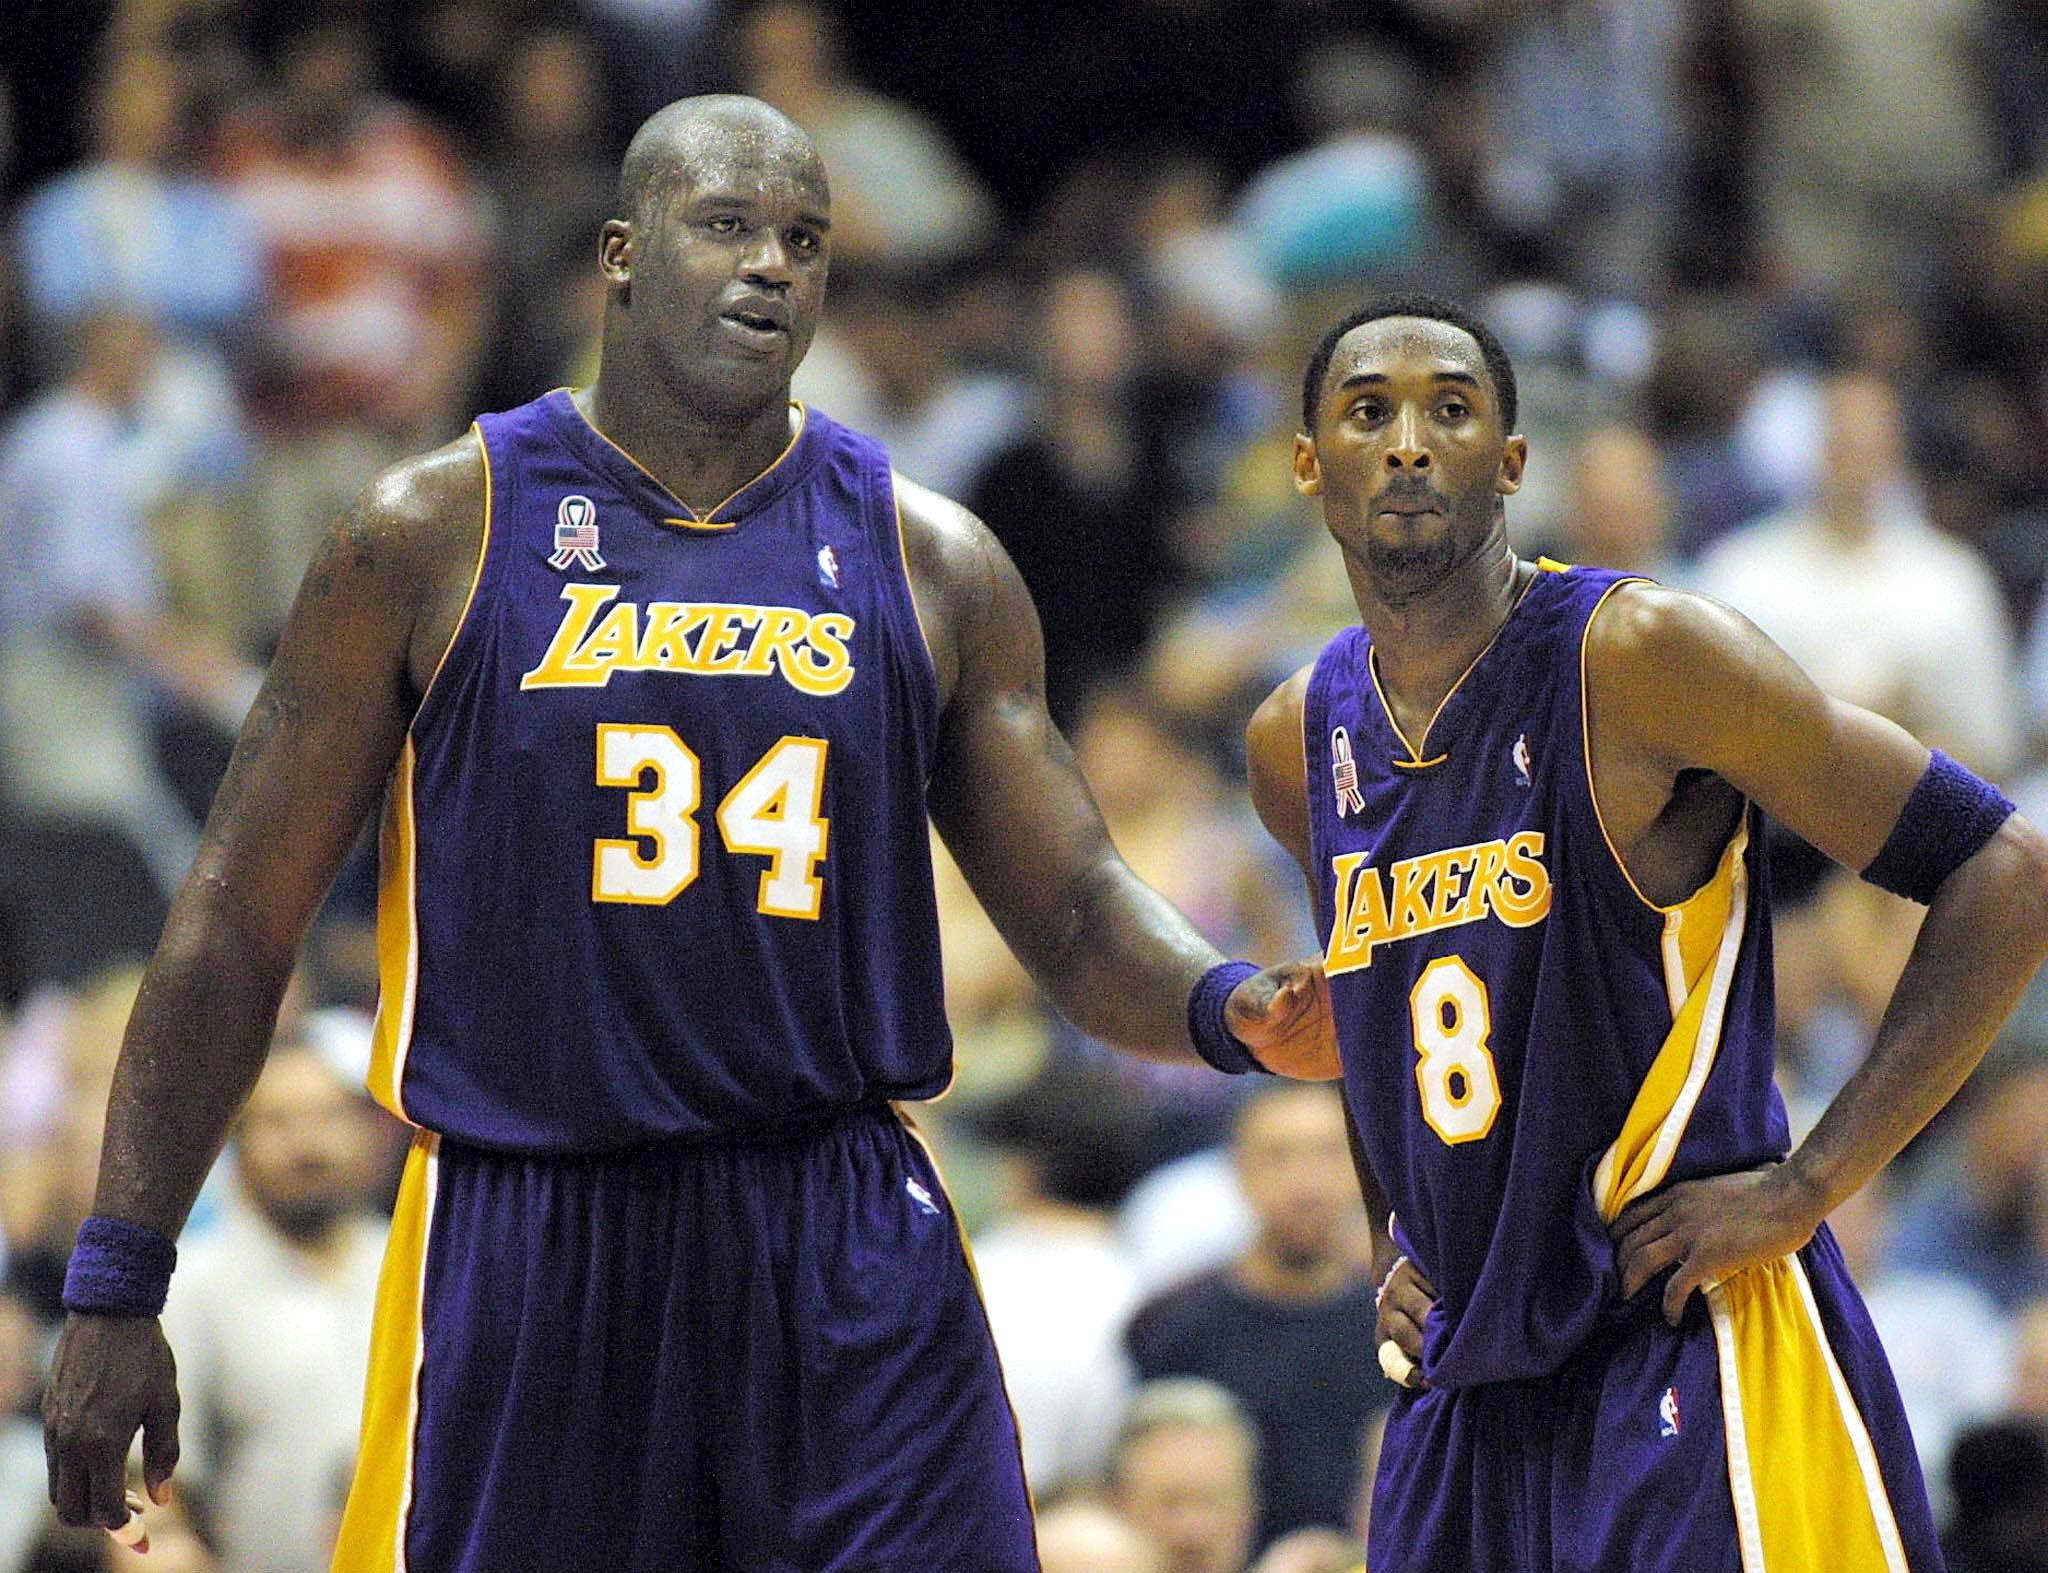 Shaquille O Neal wishes he could have shared full feelings with Kobe Bryant directly